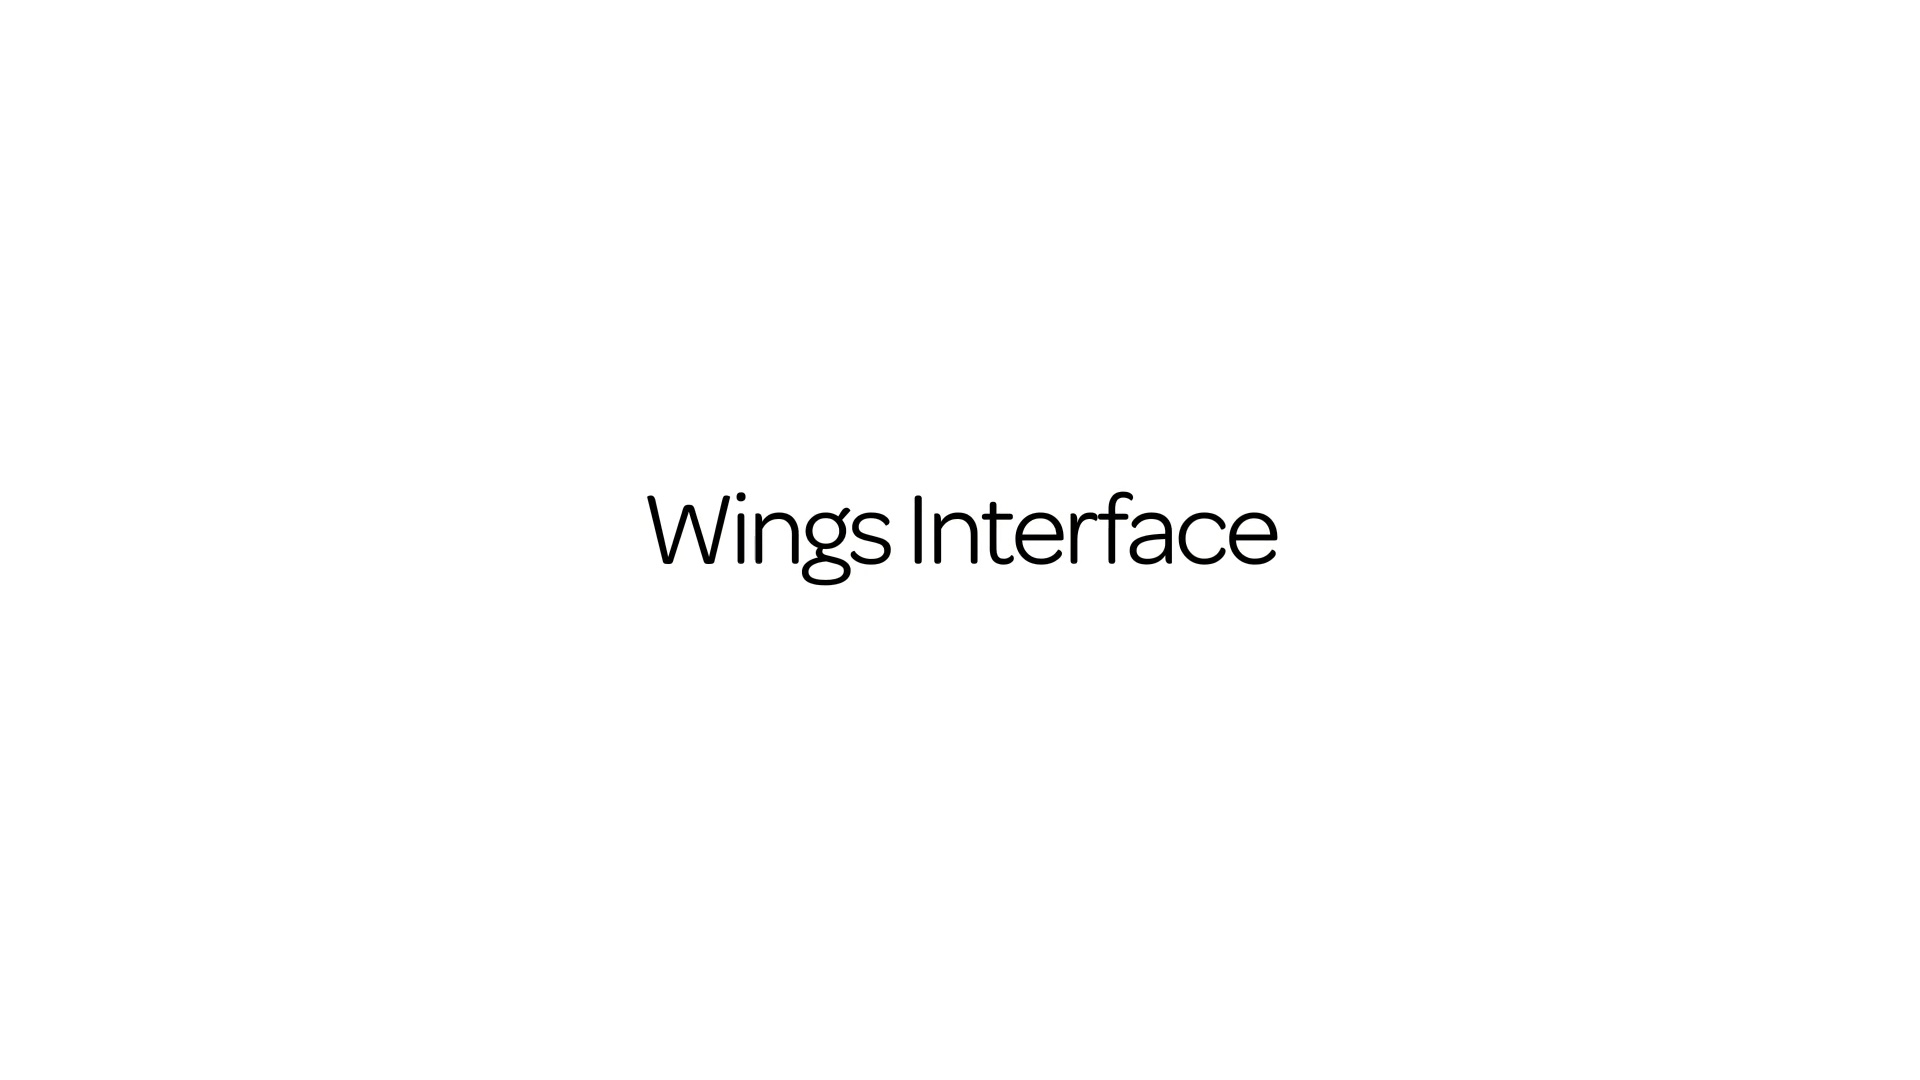 Wings Interfaces were designed from the ground up to enhance communication, reduce friction, and empower everyone.